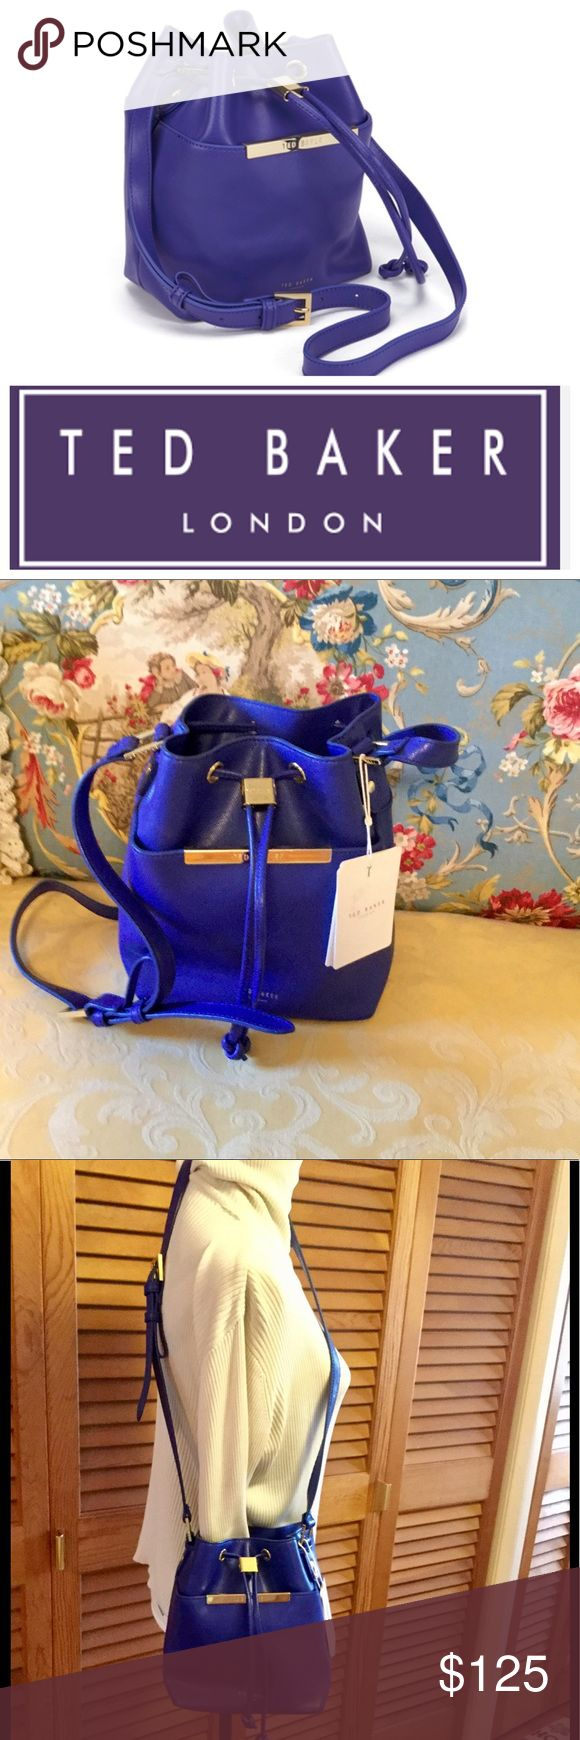 """Ted Baker Ersilda Blue Mini Bucket Crossbody bag Stunning Ted Baker Ersilda Metal Bar Mini Bucket Crossbody bag in bright blue (what I'd call royal or sapphire blue), genuine leather, NWT. Perfect condition, gold tone hardware. Interior zip pocket and divided slot pocket. Adjustable strap, can be worn on shoulder or crossbody style. Bag itself measures about 9"""" tall x 8"""" long x 4 1/2"""" wide. Gorgeous bag, will go with everything, dressy or casual. Bundle with two other items for automatic 25%…"""